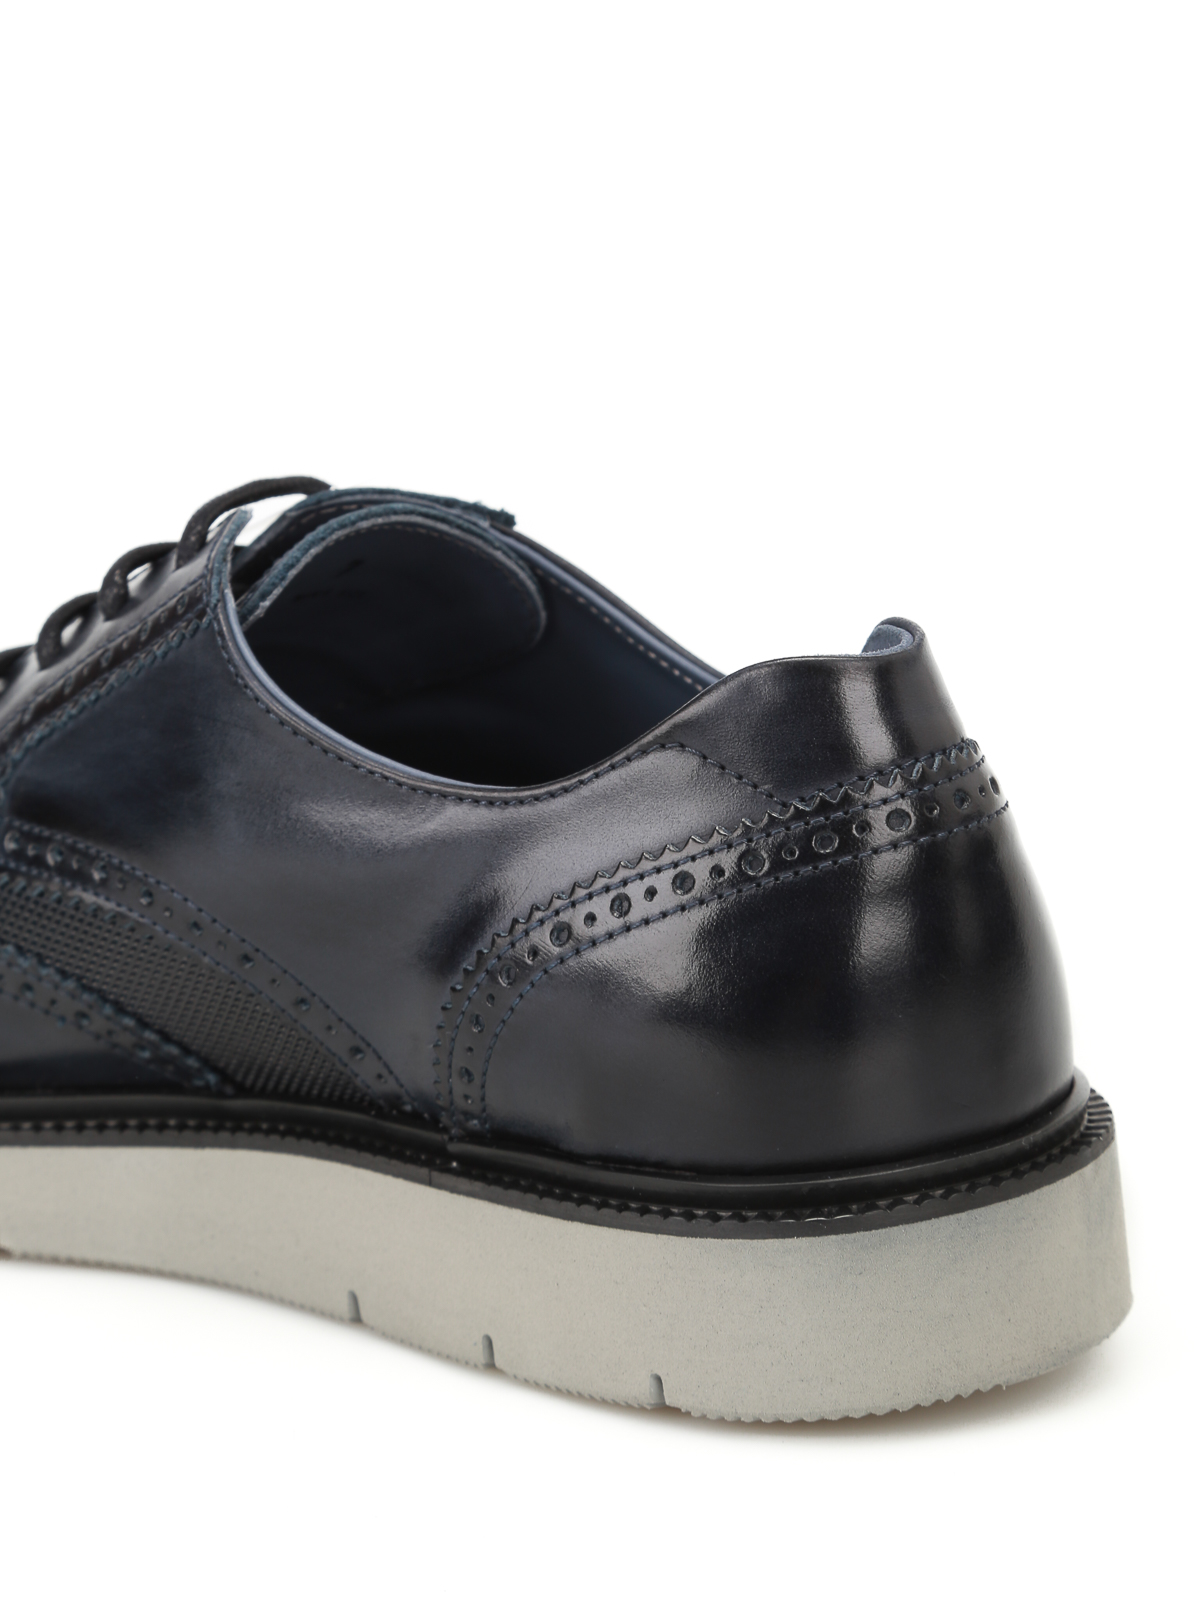 Hogan H322 smooth leather derby shoes آکسفورد